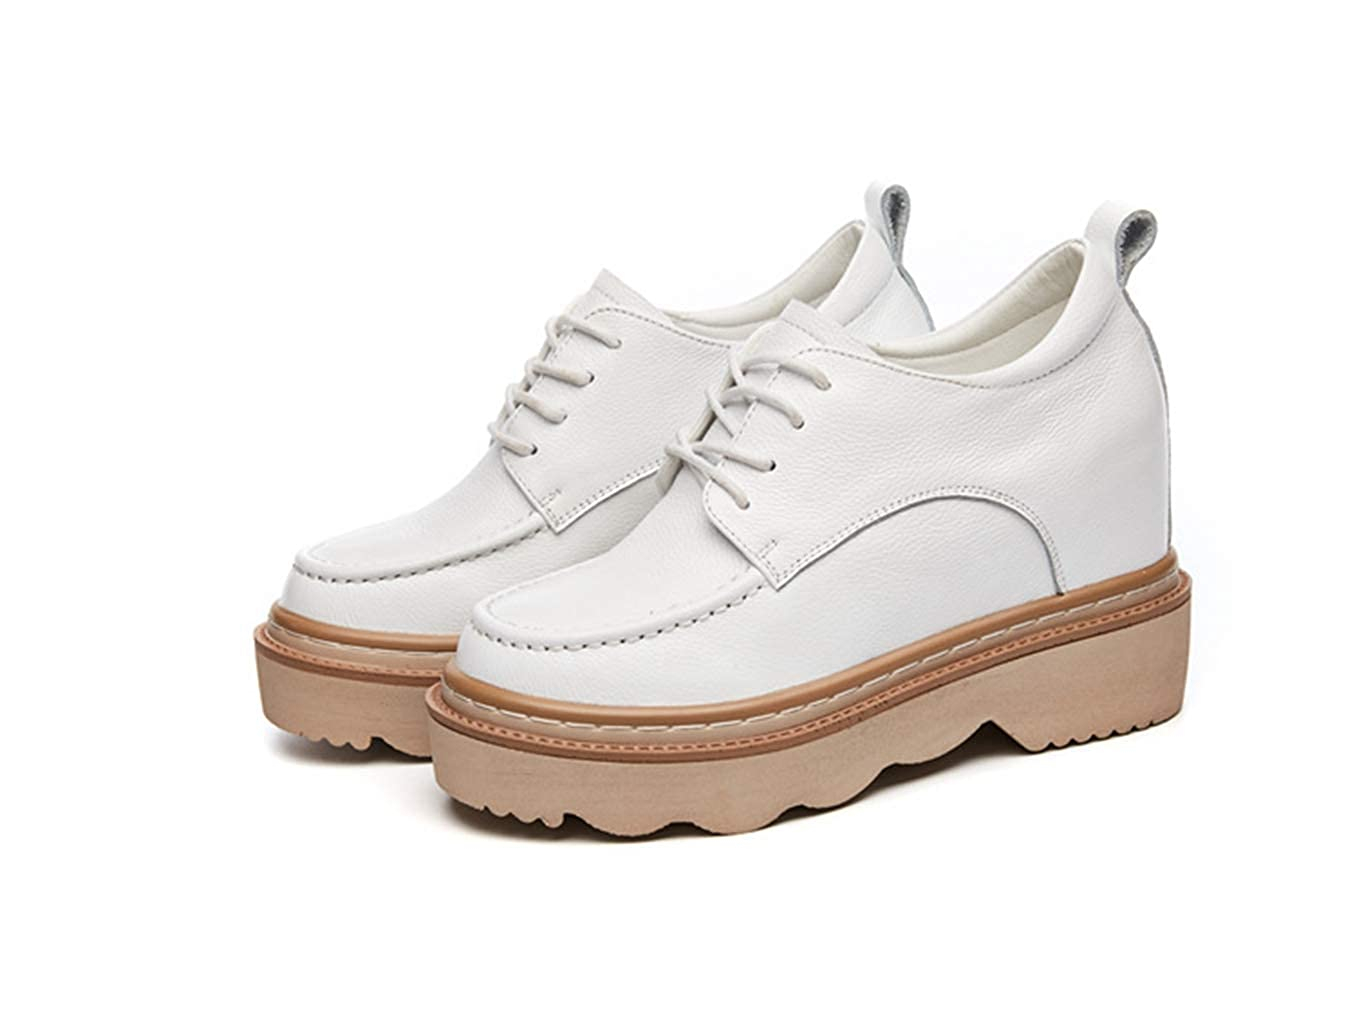 White T-JULY Woman Autumn Genuine Leather Leisure shoes Female Casual Platform White Wedge Sneakres